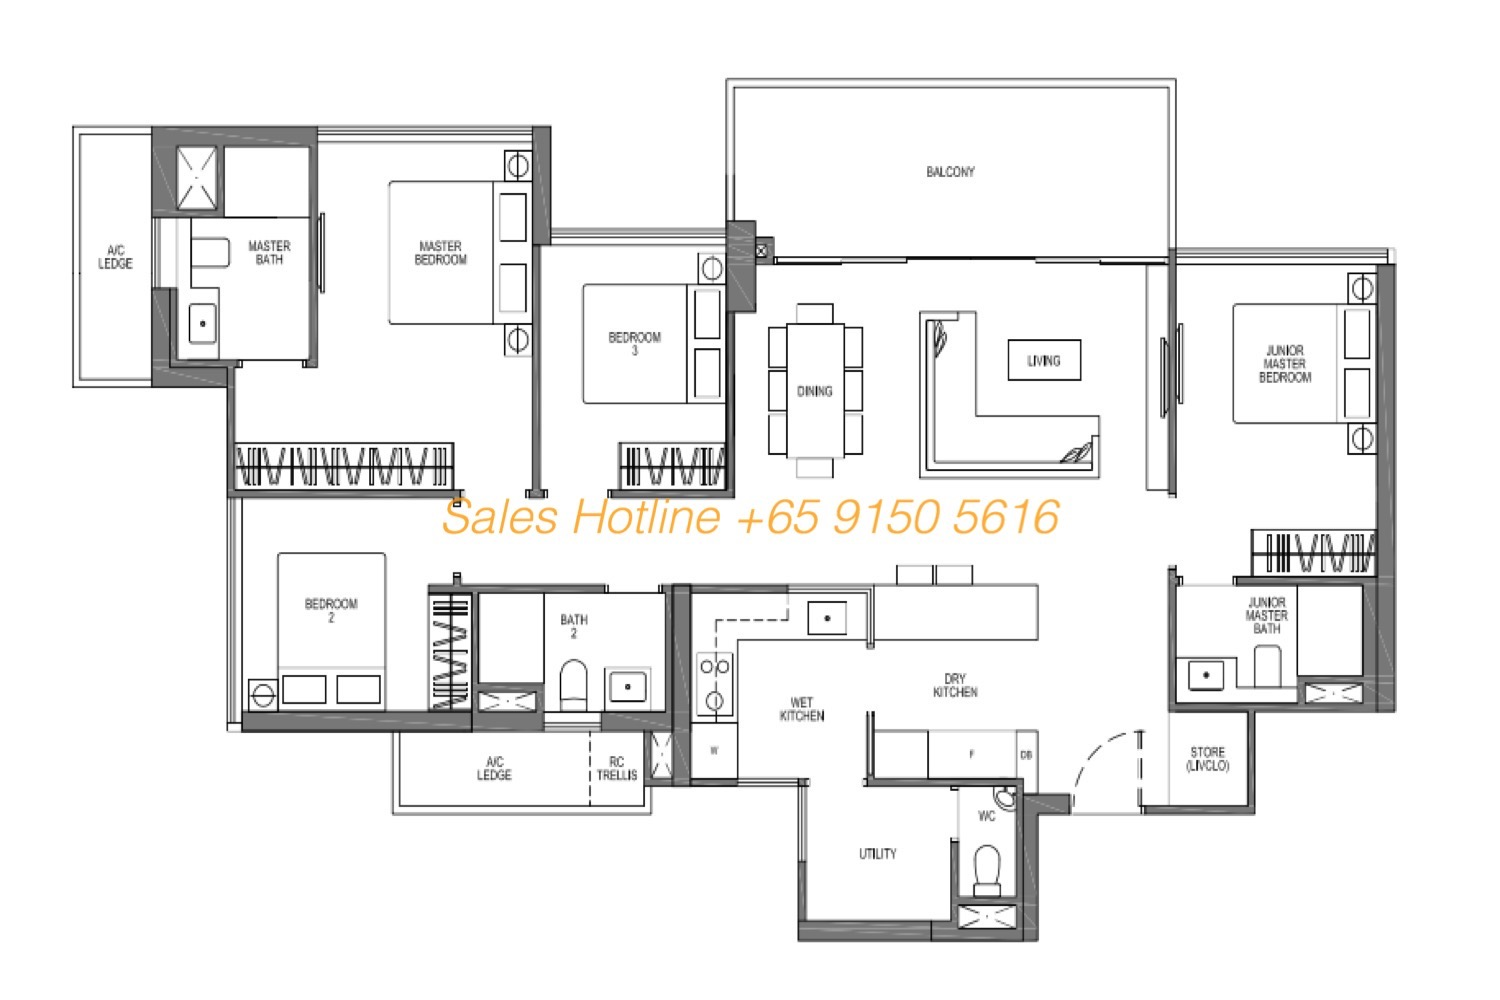 Seaside Residences Floor Plan - Vista